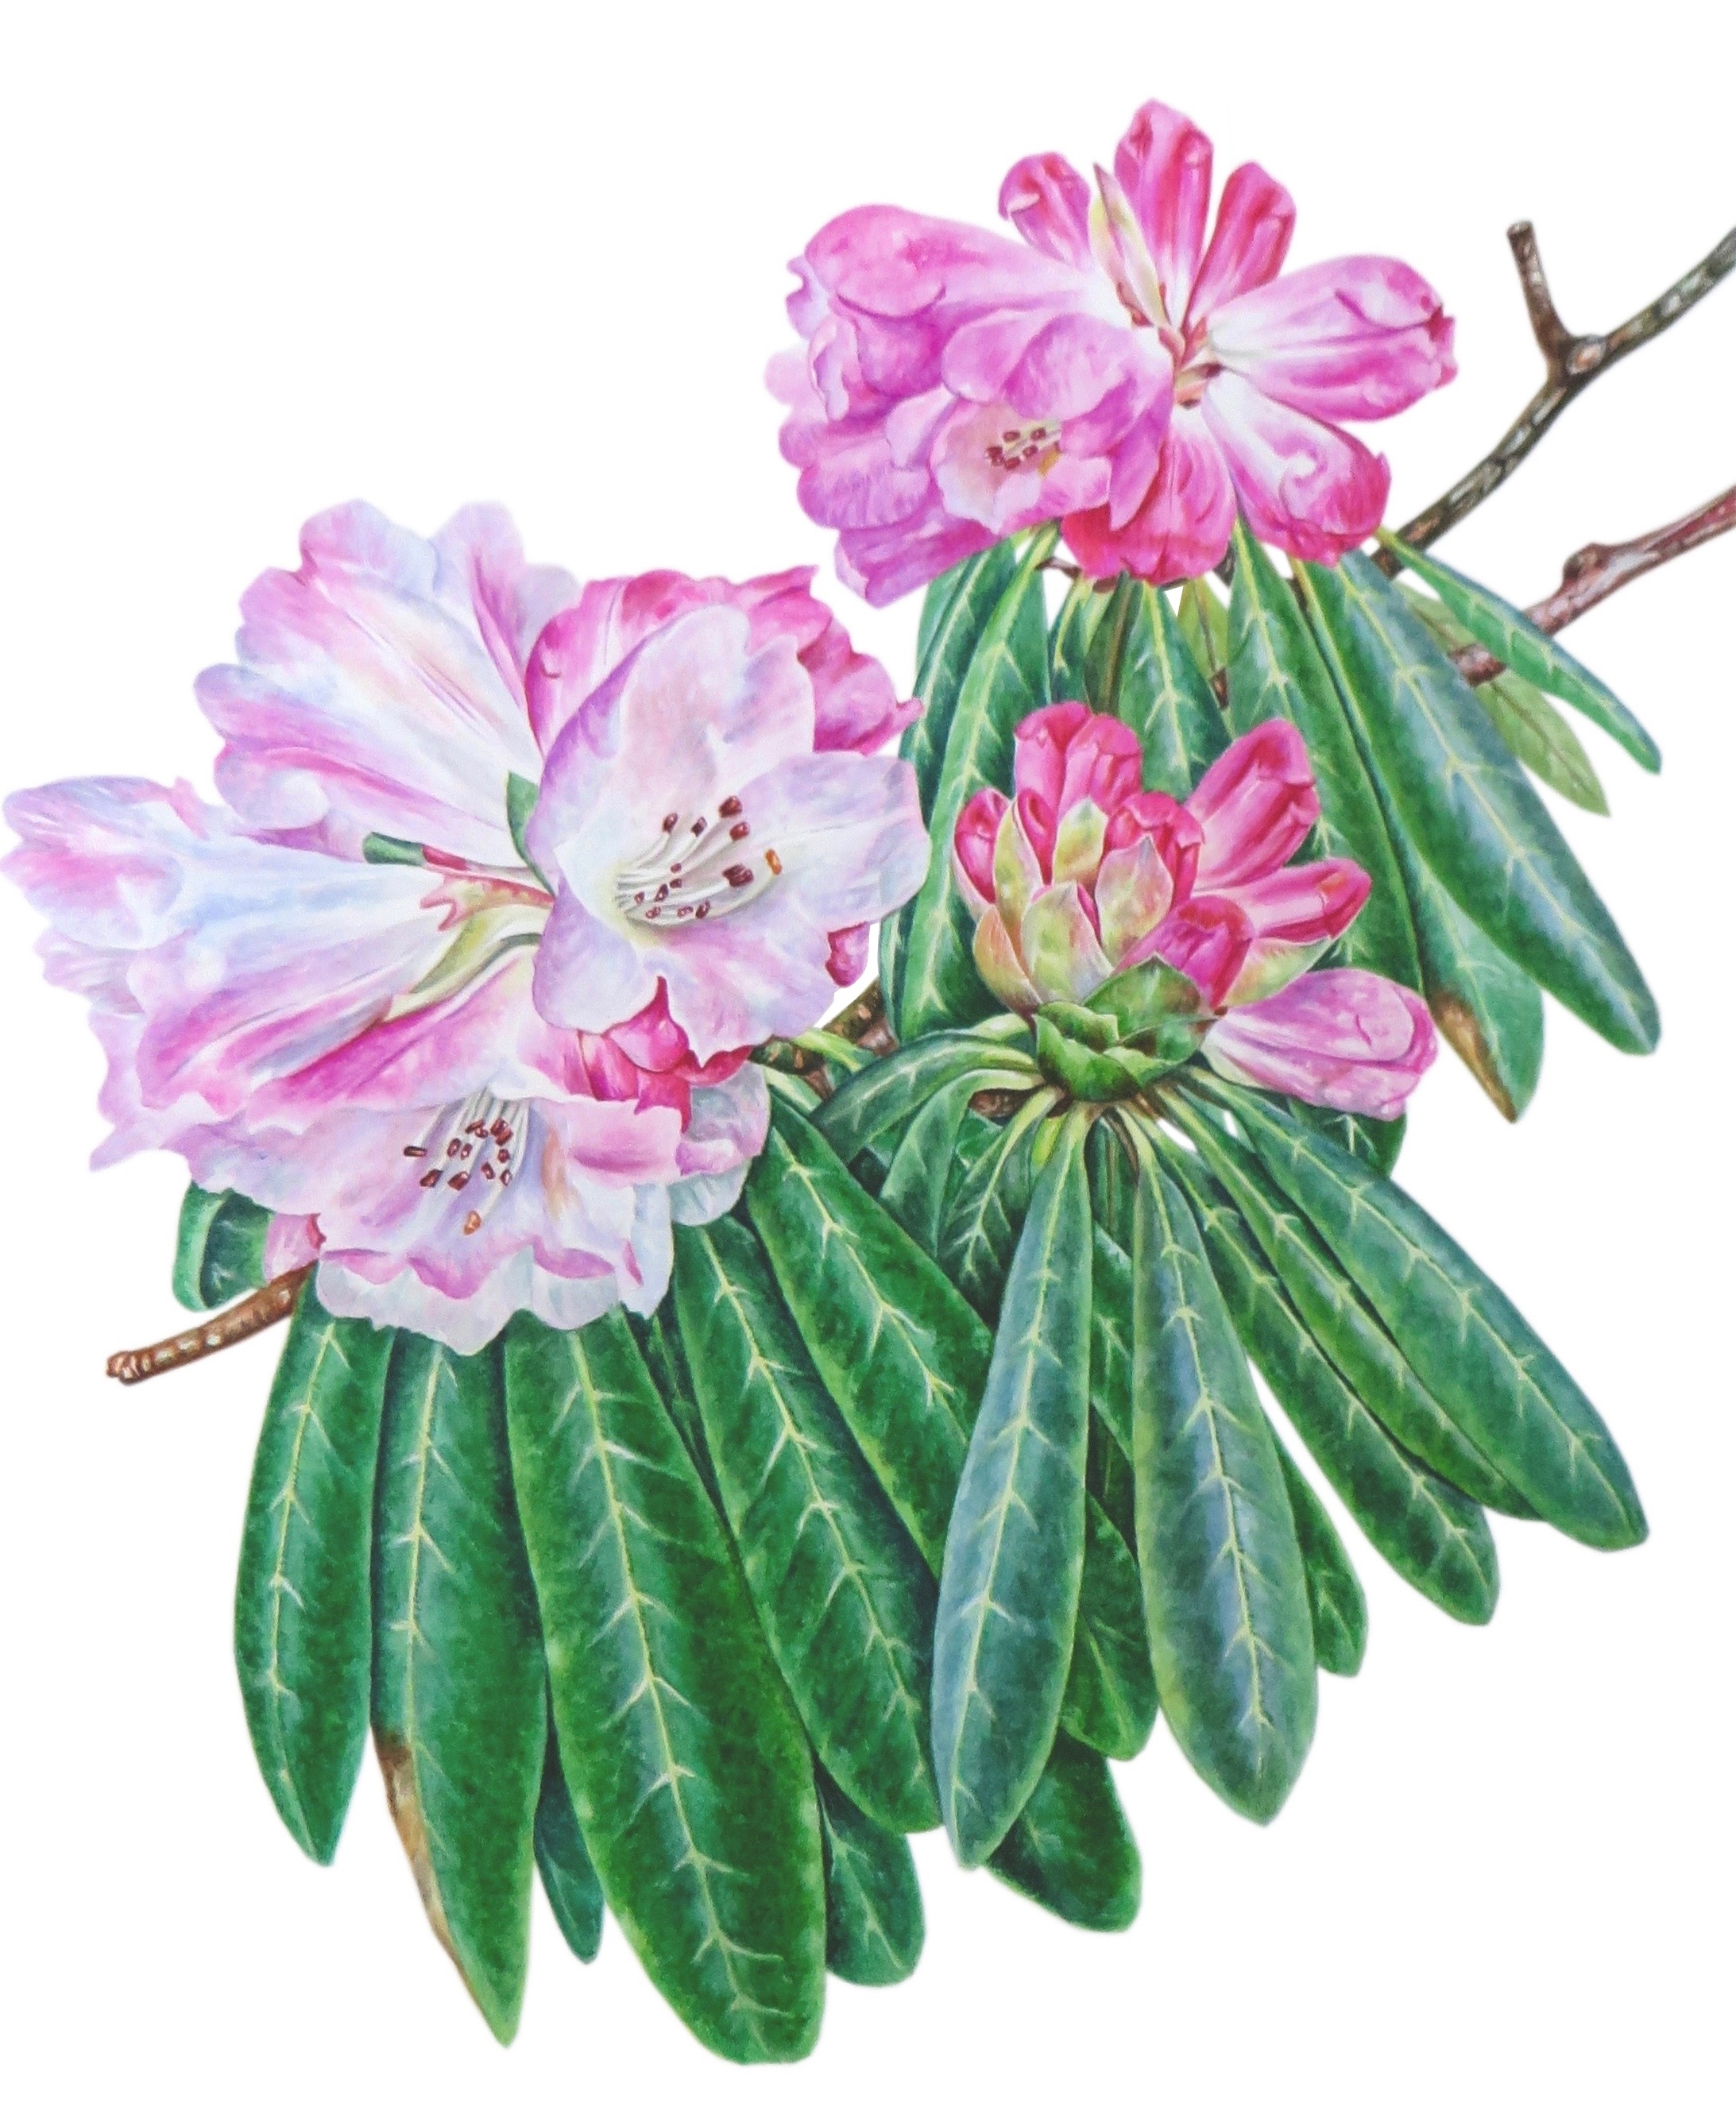 Rhododendron 'Calophytum' (1)